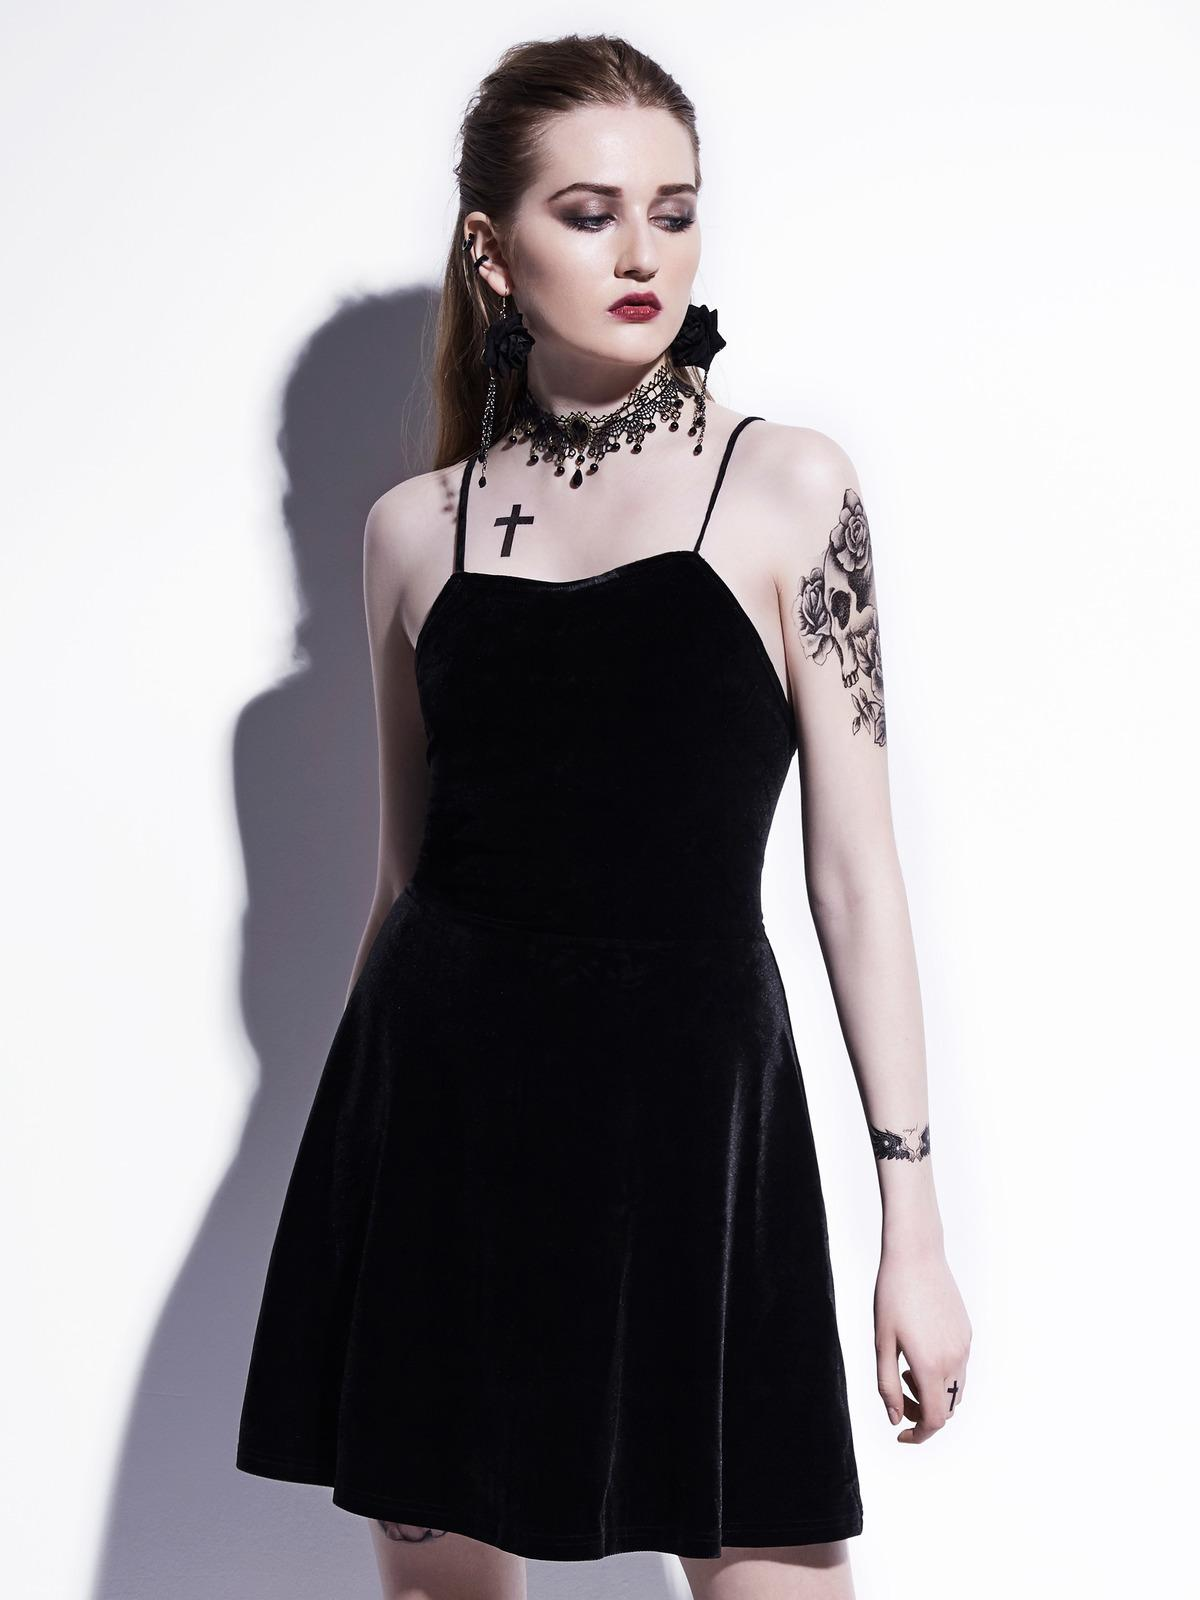 b0c797c3343b3 Gothic Mini Dress 2018 Black Summer Women Sexy Short Dress Velvet Backless  Lace Up Spaghetti Strap A Line Goth Dresses Sexy Dresses Vintage Dresses  From ...